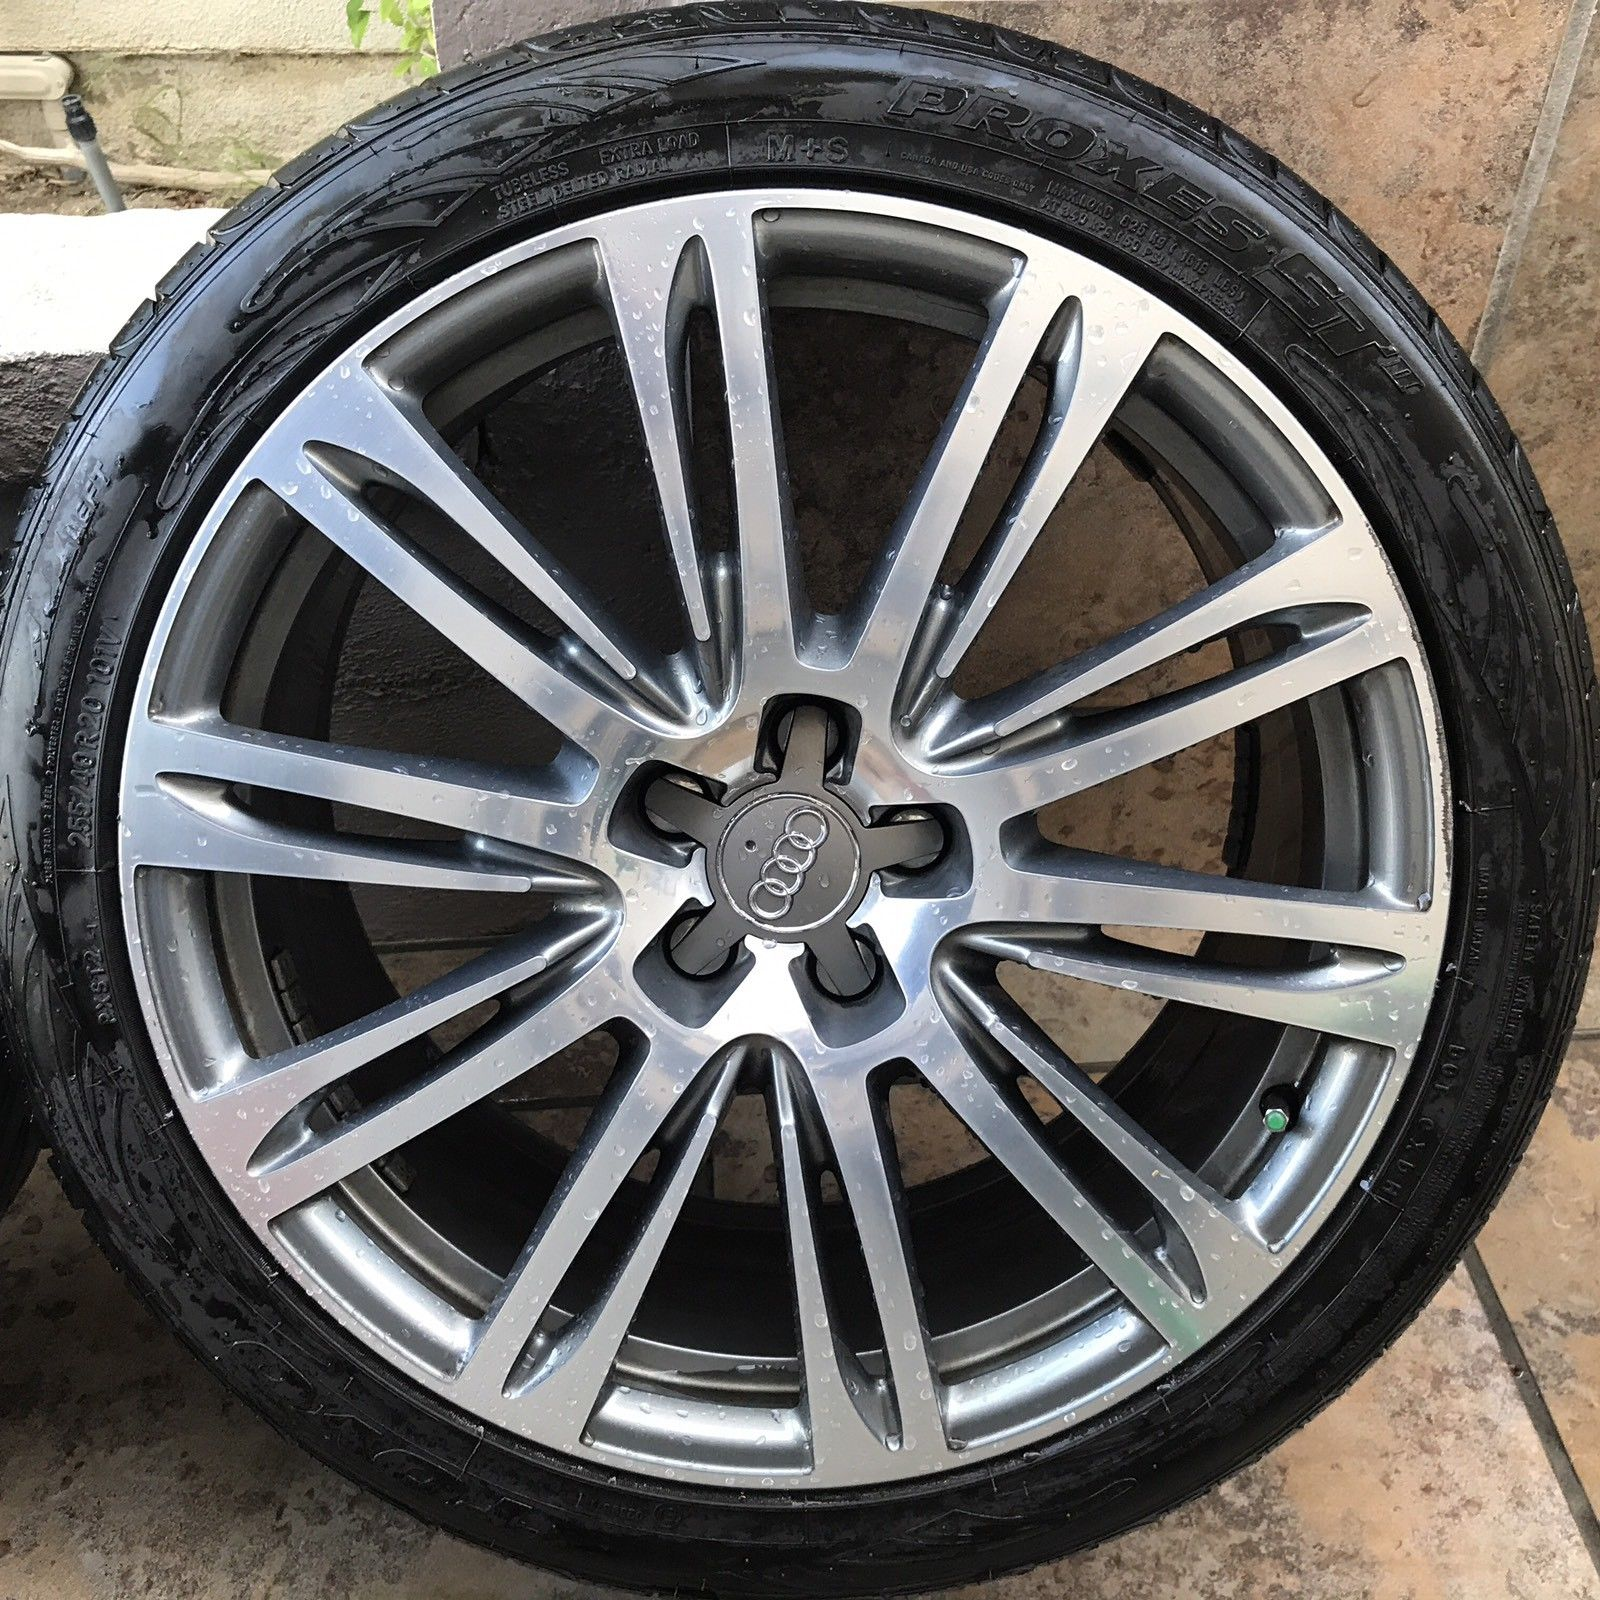 forums call up parts grabs sale factory audi wheels img direct me oem for at